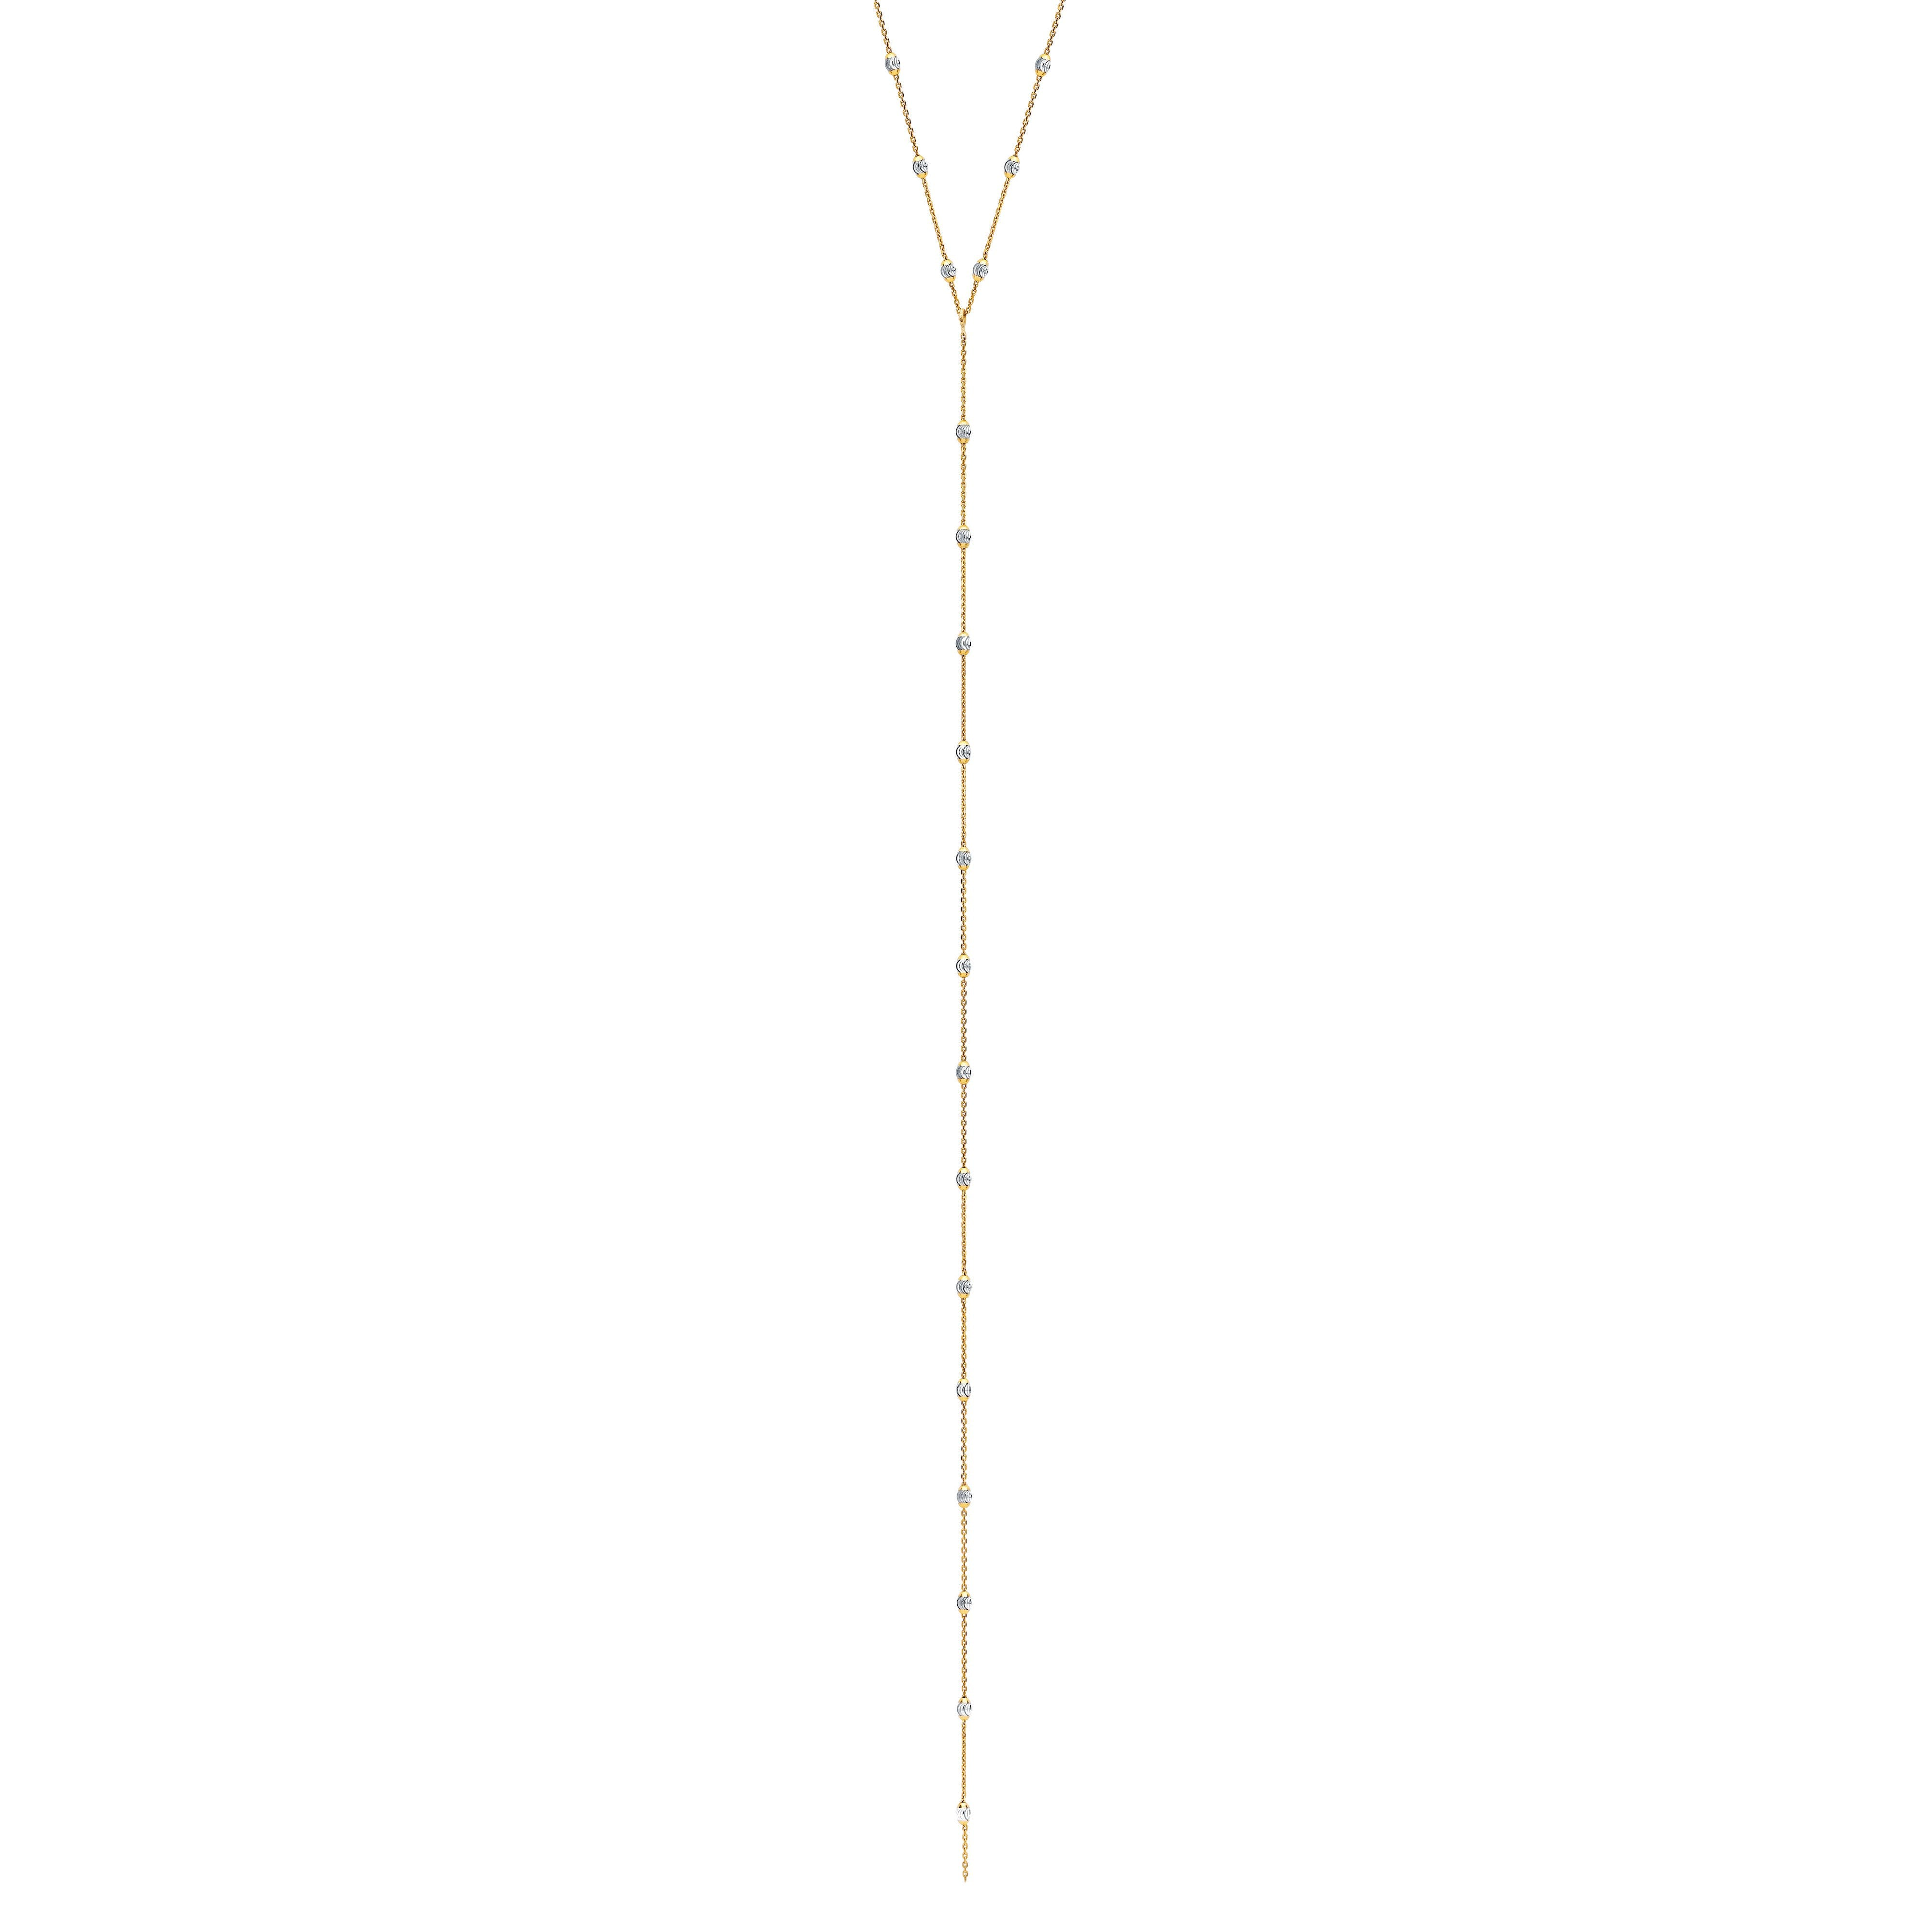 NEW! Mooncut Lariat